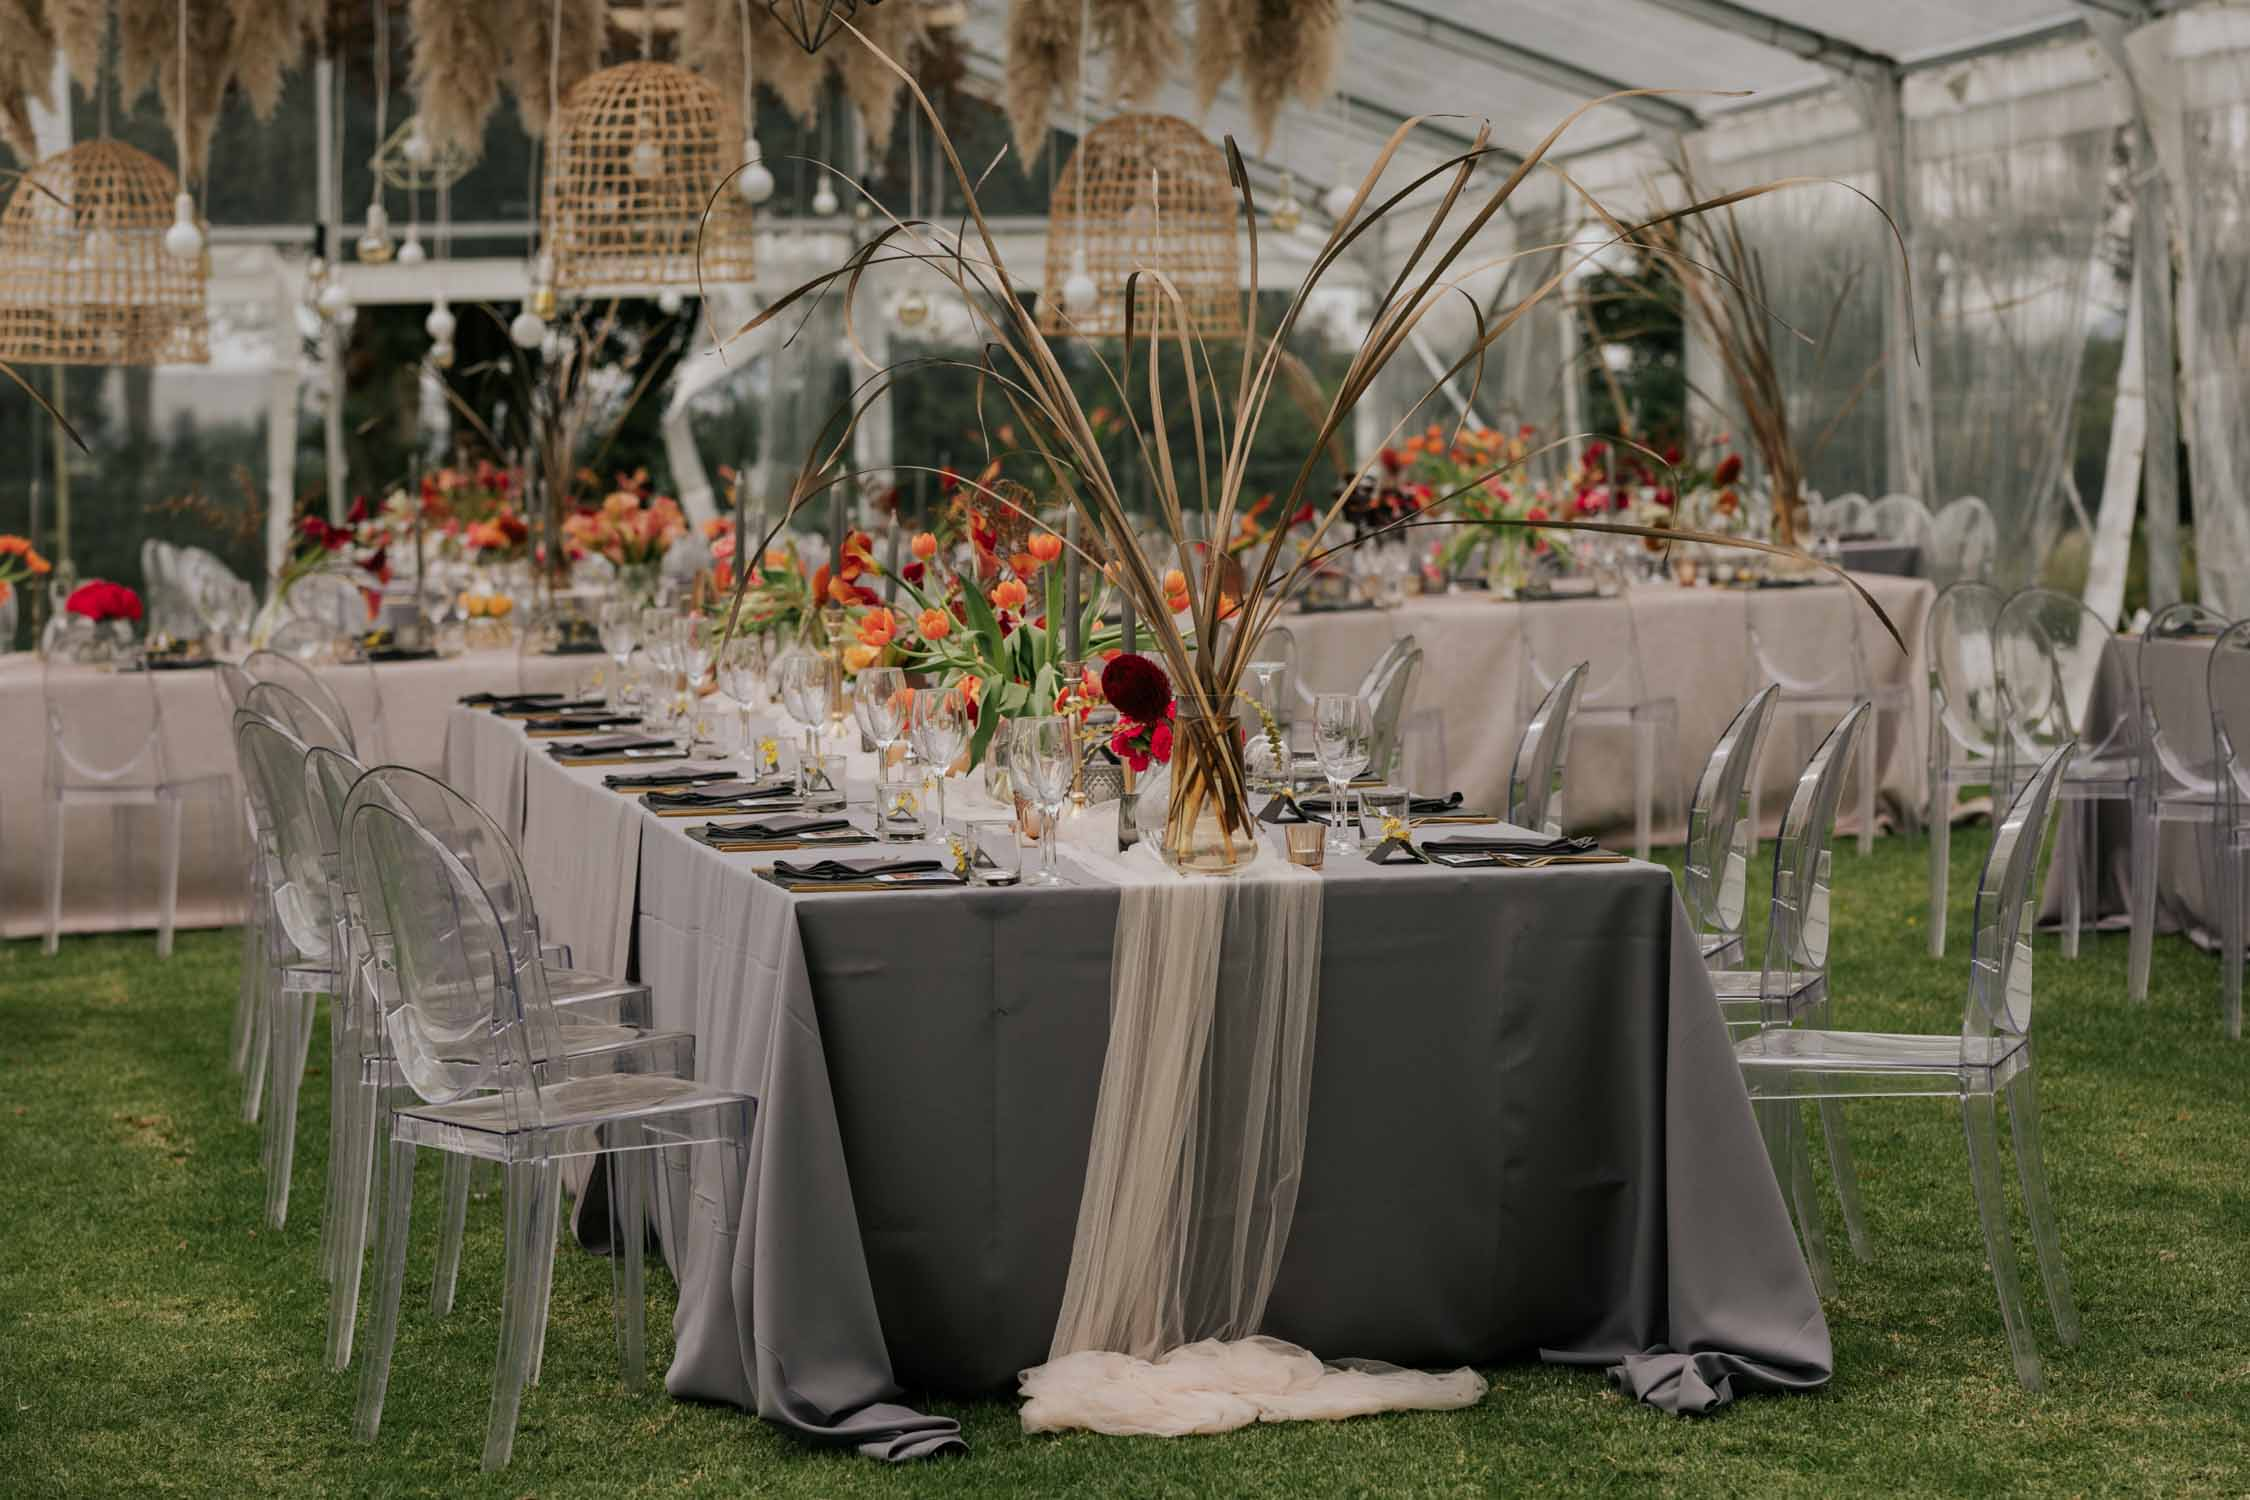 Wedding tables set in glass tent with velvet table cloths with bright flowers and dried flowers